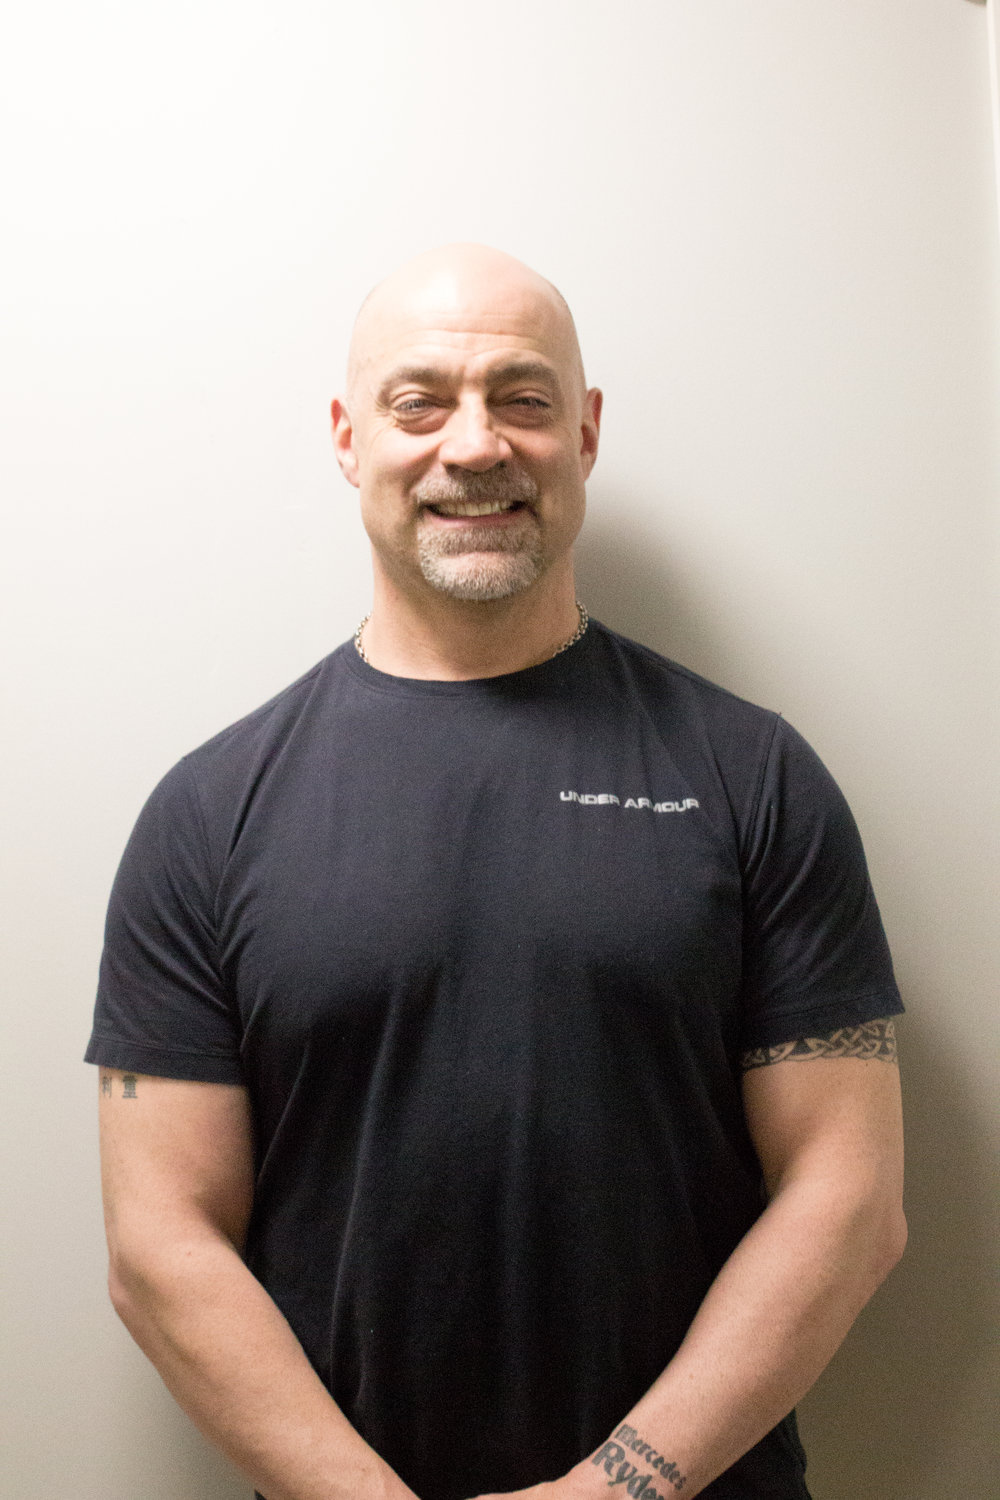 Mike-Wilson-Sports-massage-therapist-maple-ridge-bc).jpg